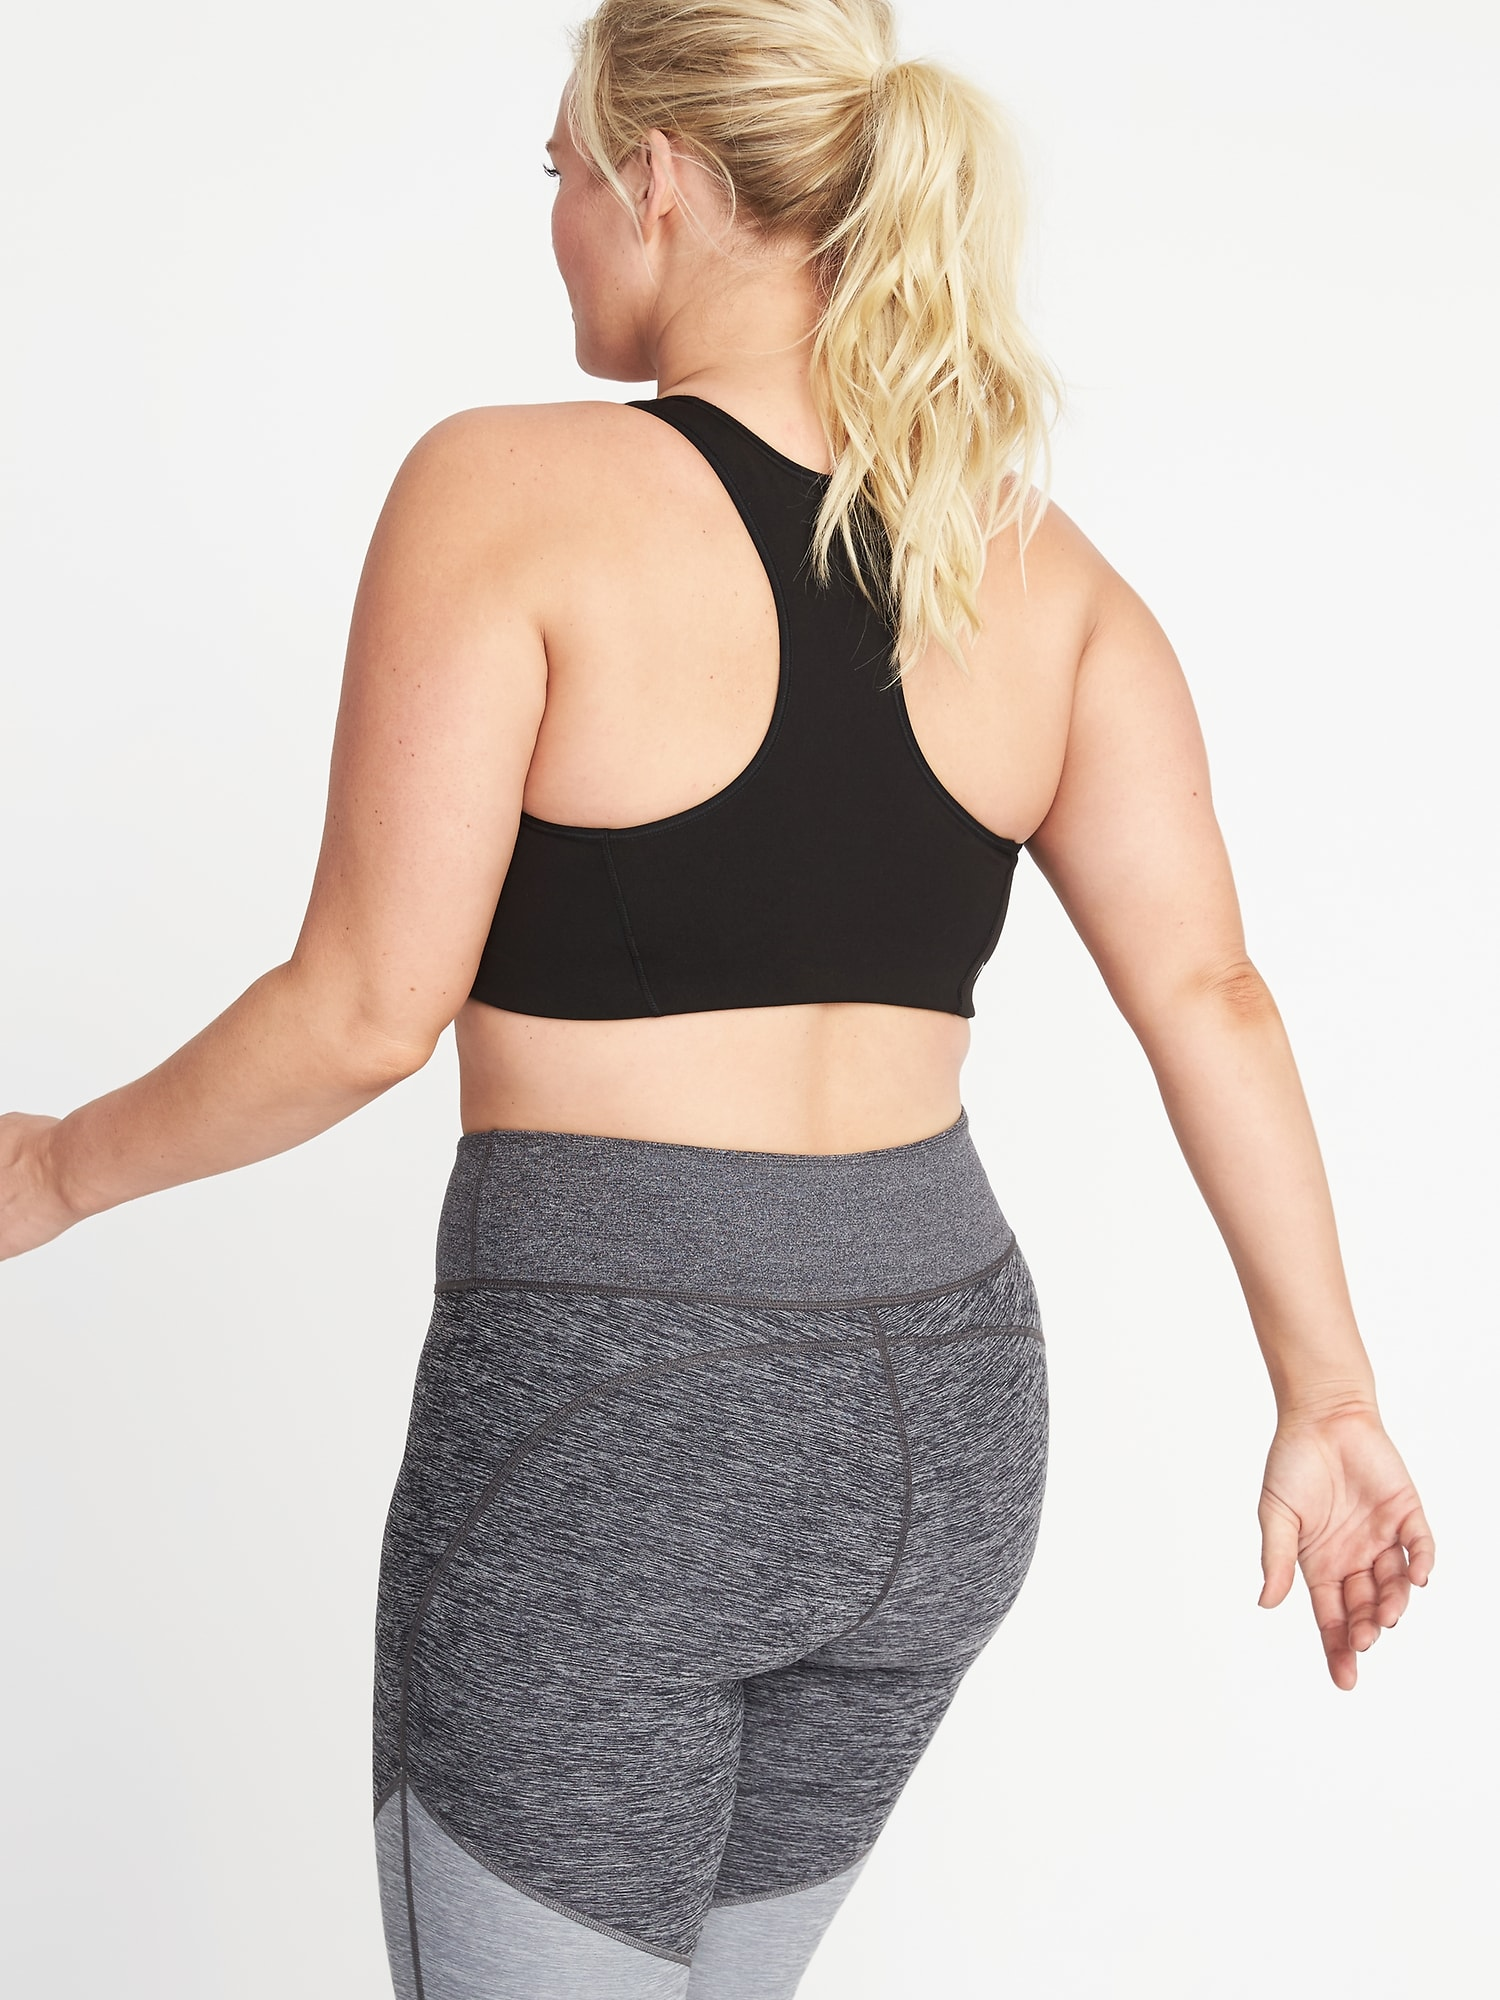 1fb260b8b5476 Home Shop Medium Support Plus-Size Racerback Sports Bra by Old Navy.  Categories  All Products